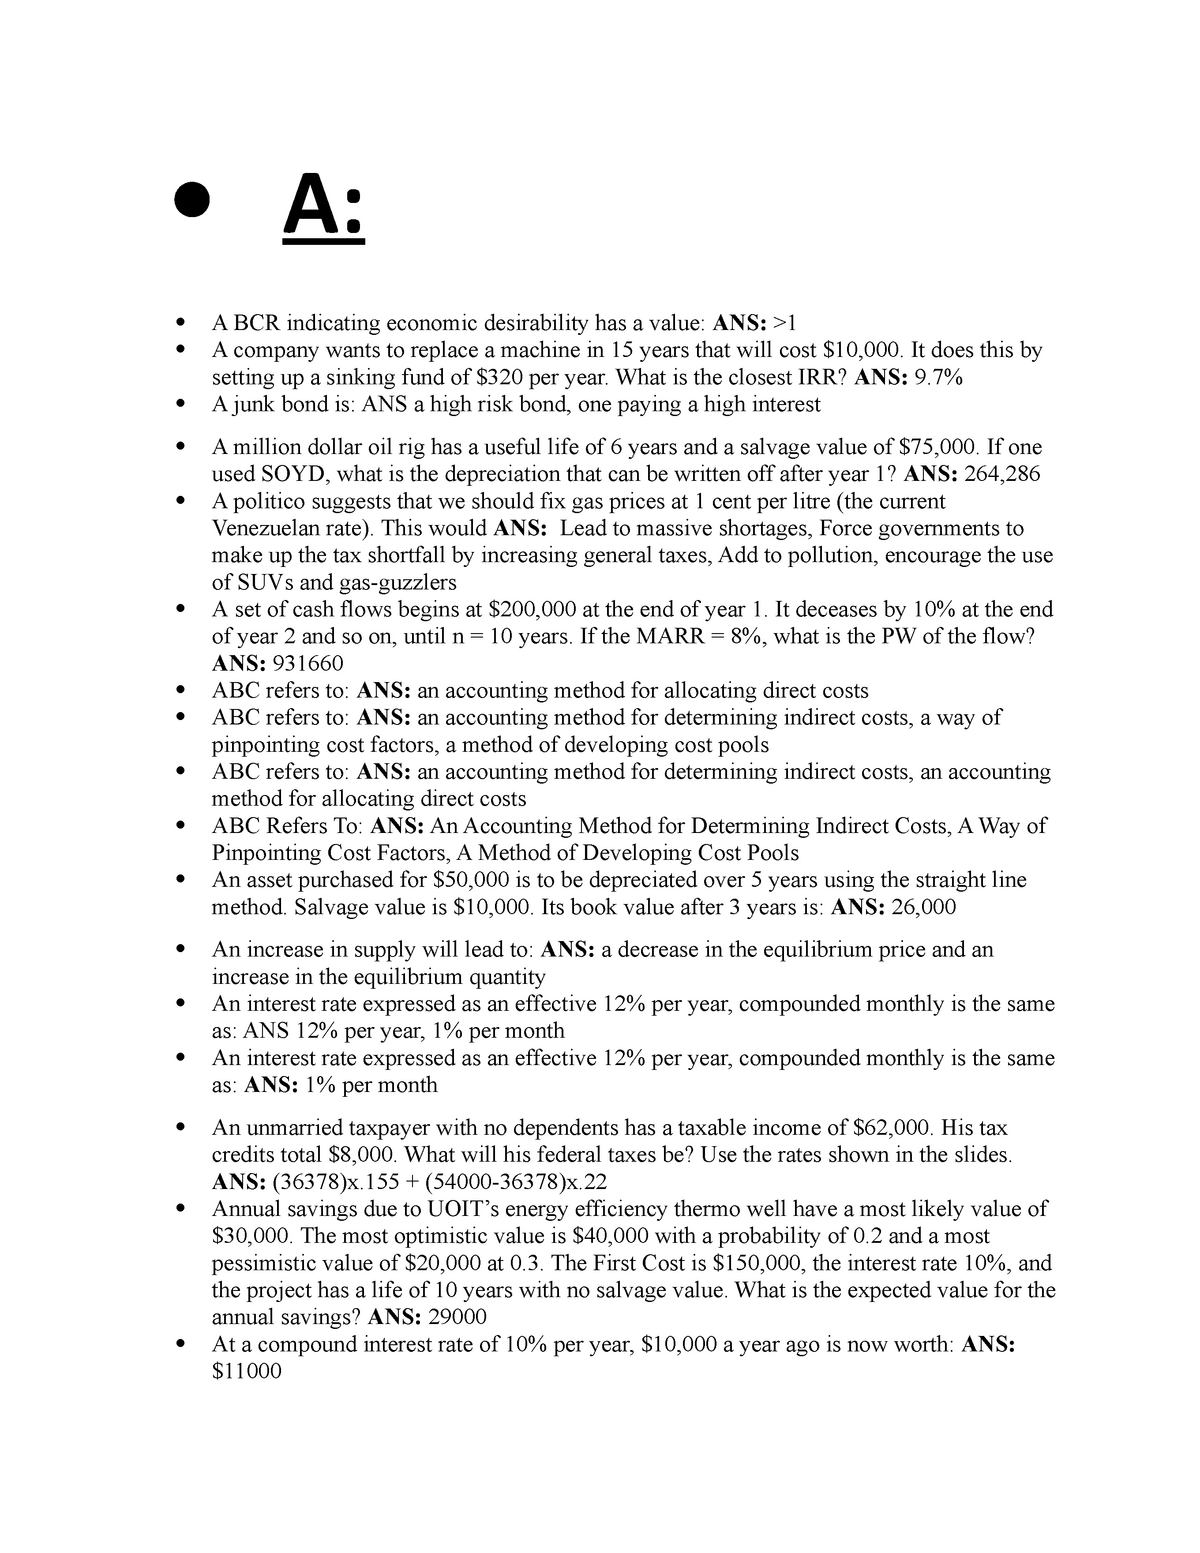 Sample/practice exam 2010, questions and answers ...